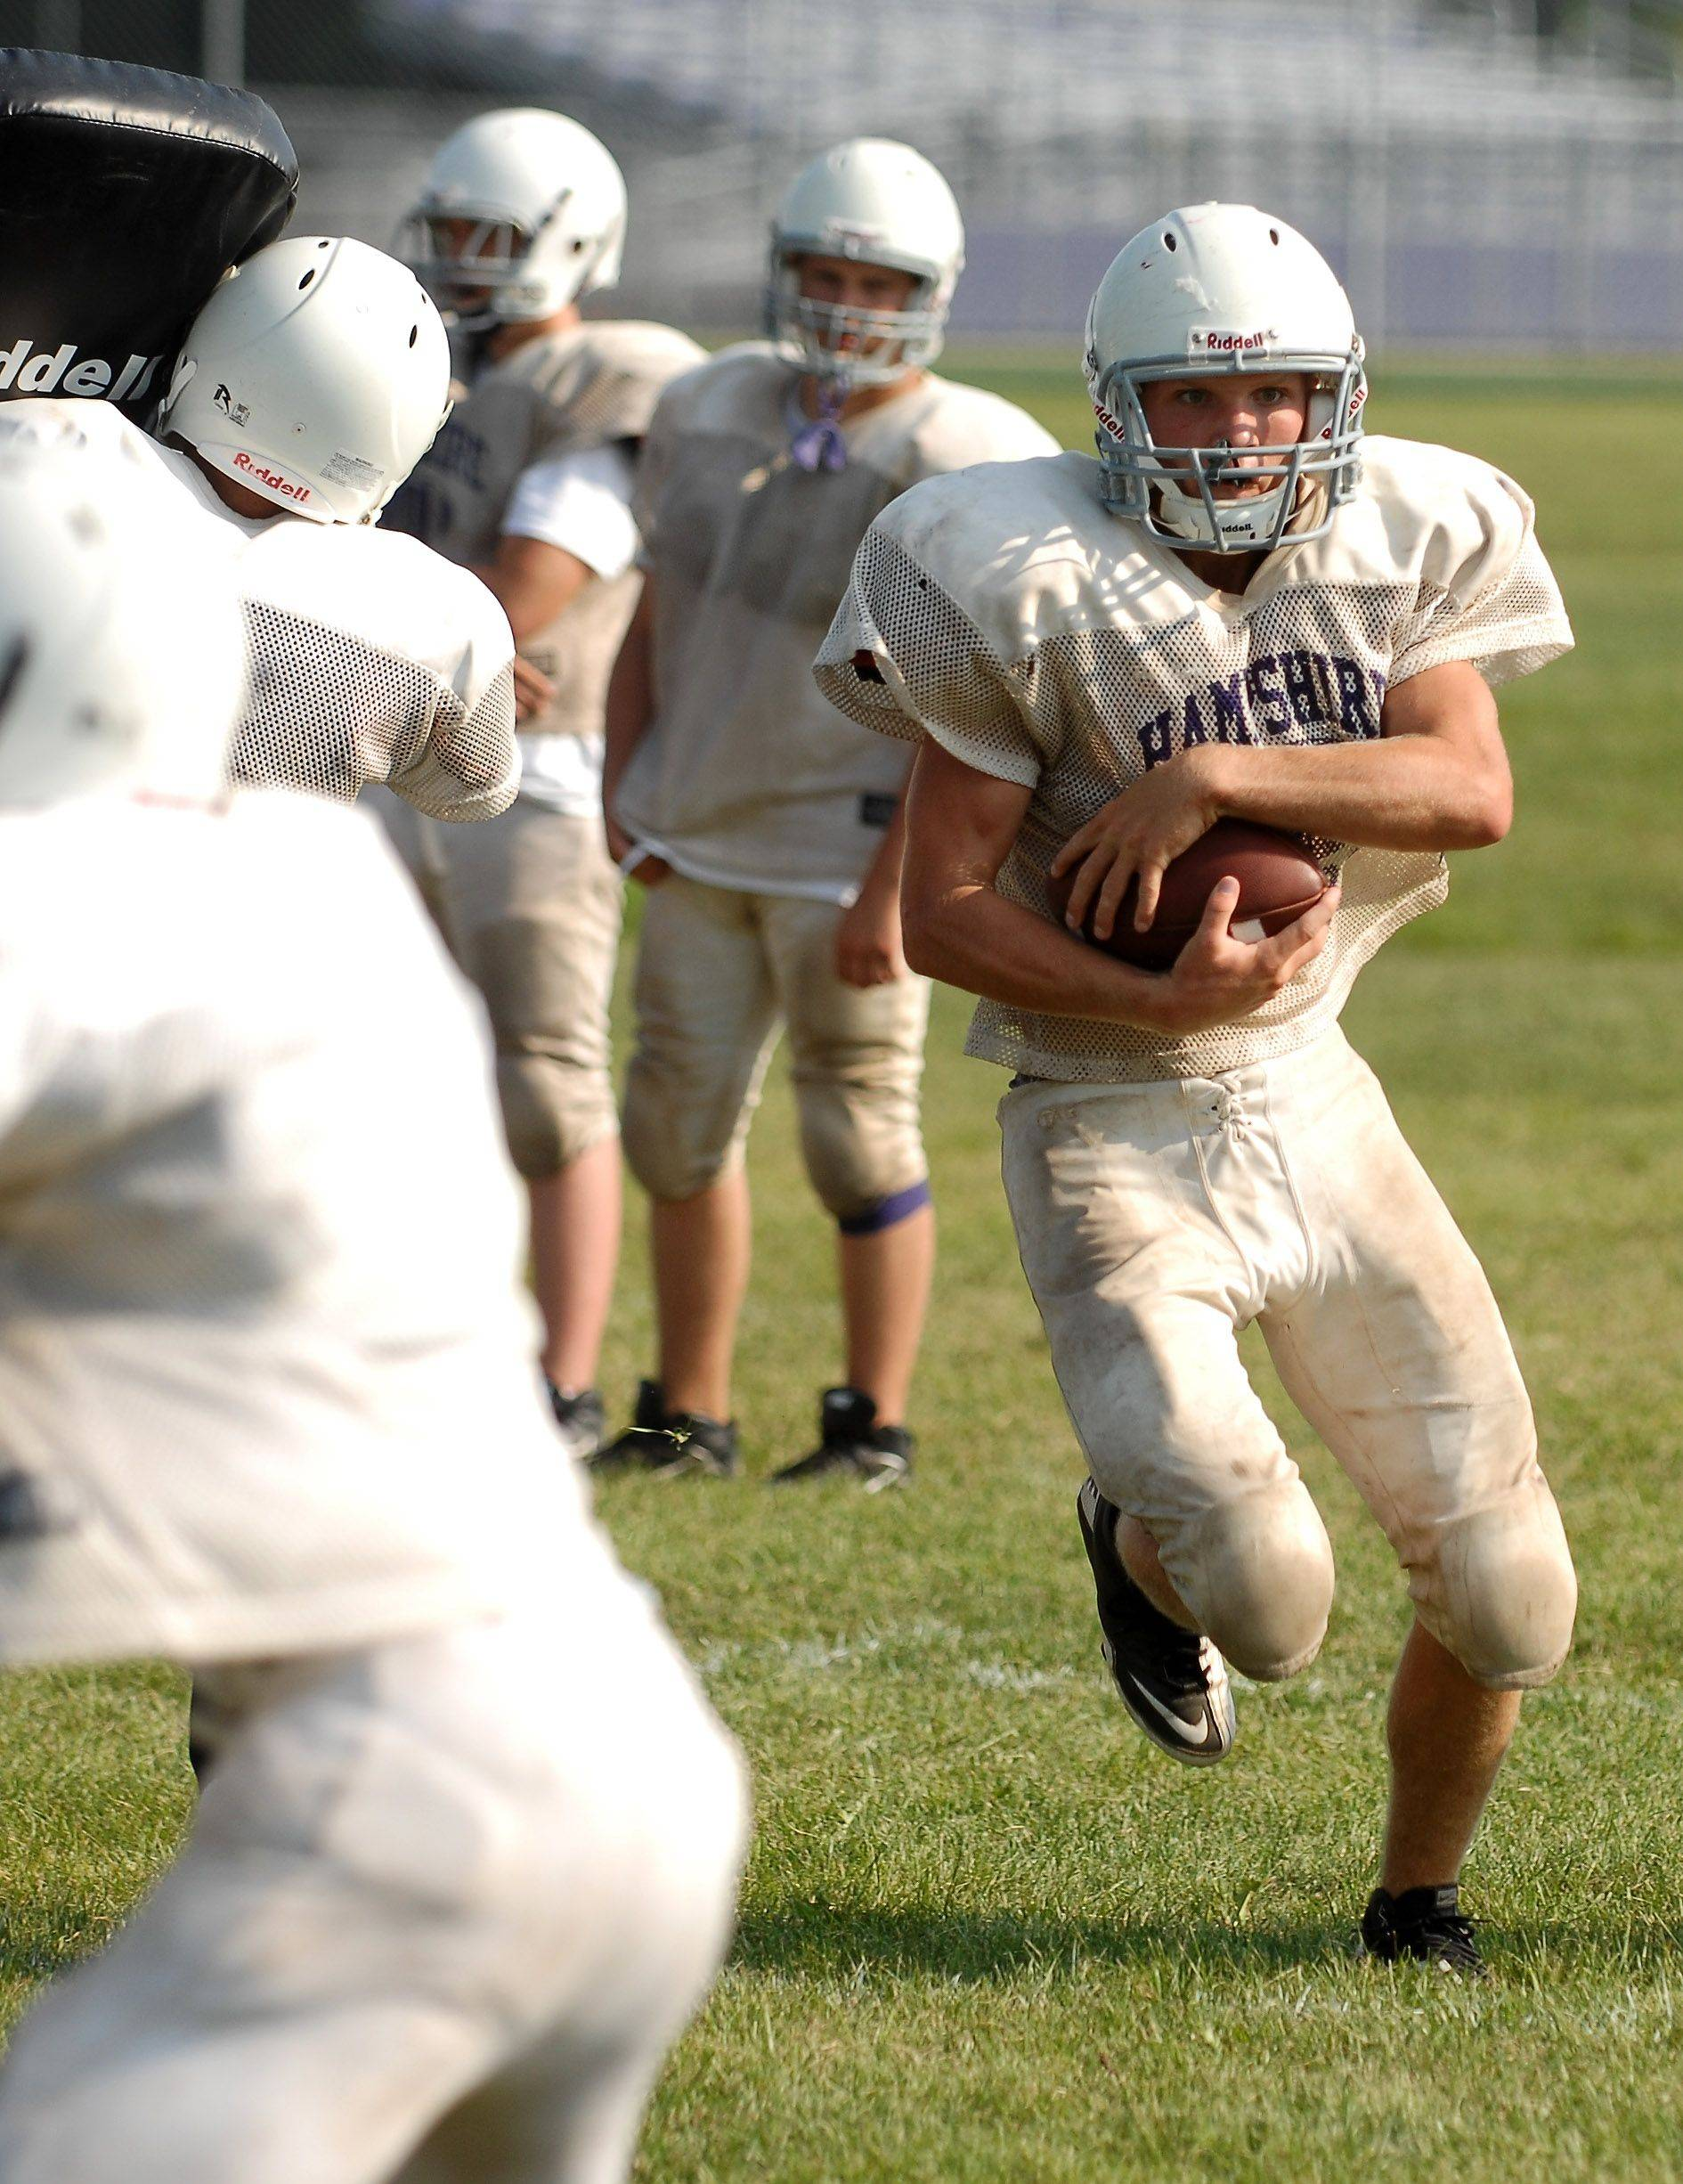 Chase Lundy finds some running room during a Hampshire football practice last week. The Whip-Purs join the Fox Division of the Fox Valley Conference this season for the first time. They open the season Friday at home against traditional rival Burlington Central.